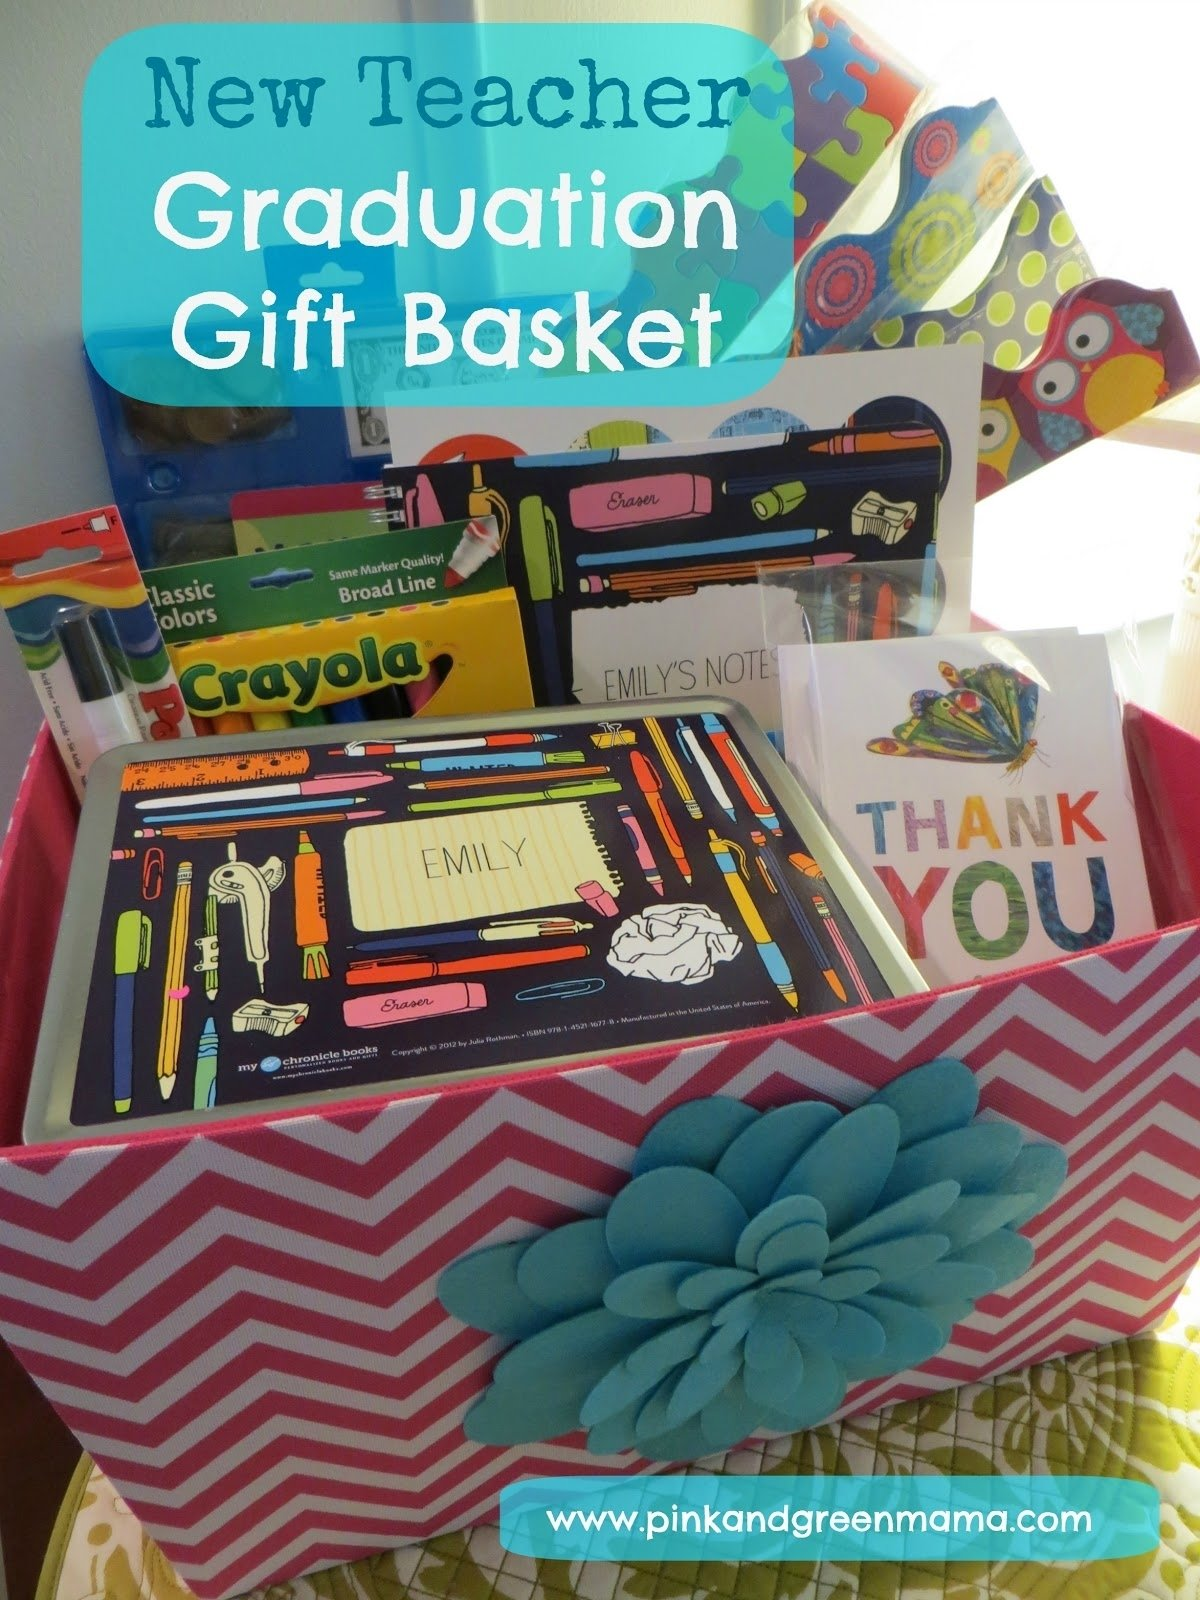 10 Great Gift Basket Ideas For Teachers pink and green mama graduation gift basket for a new teacher with 2 2021